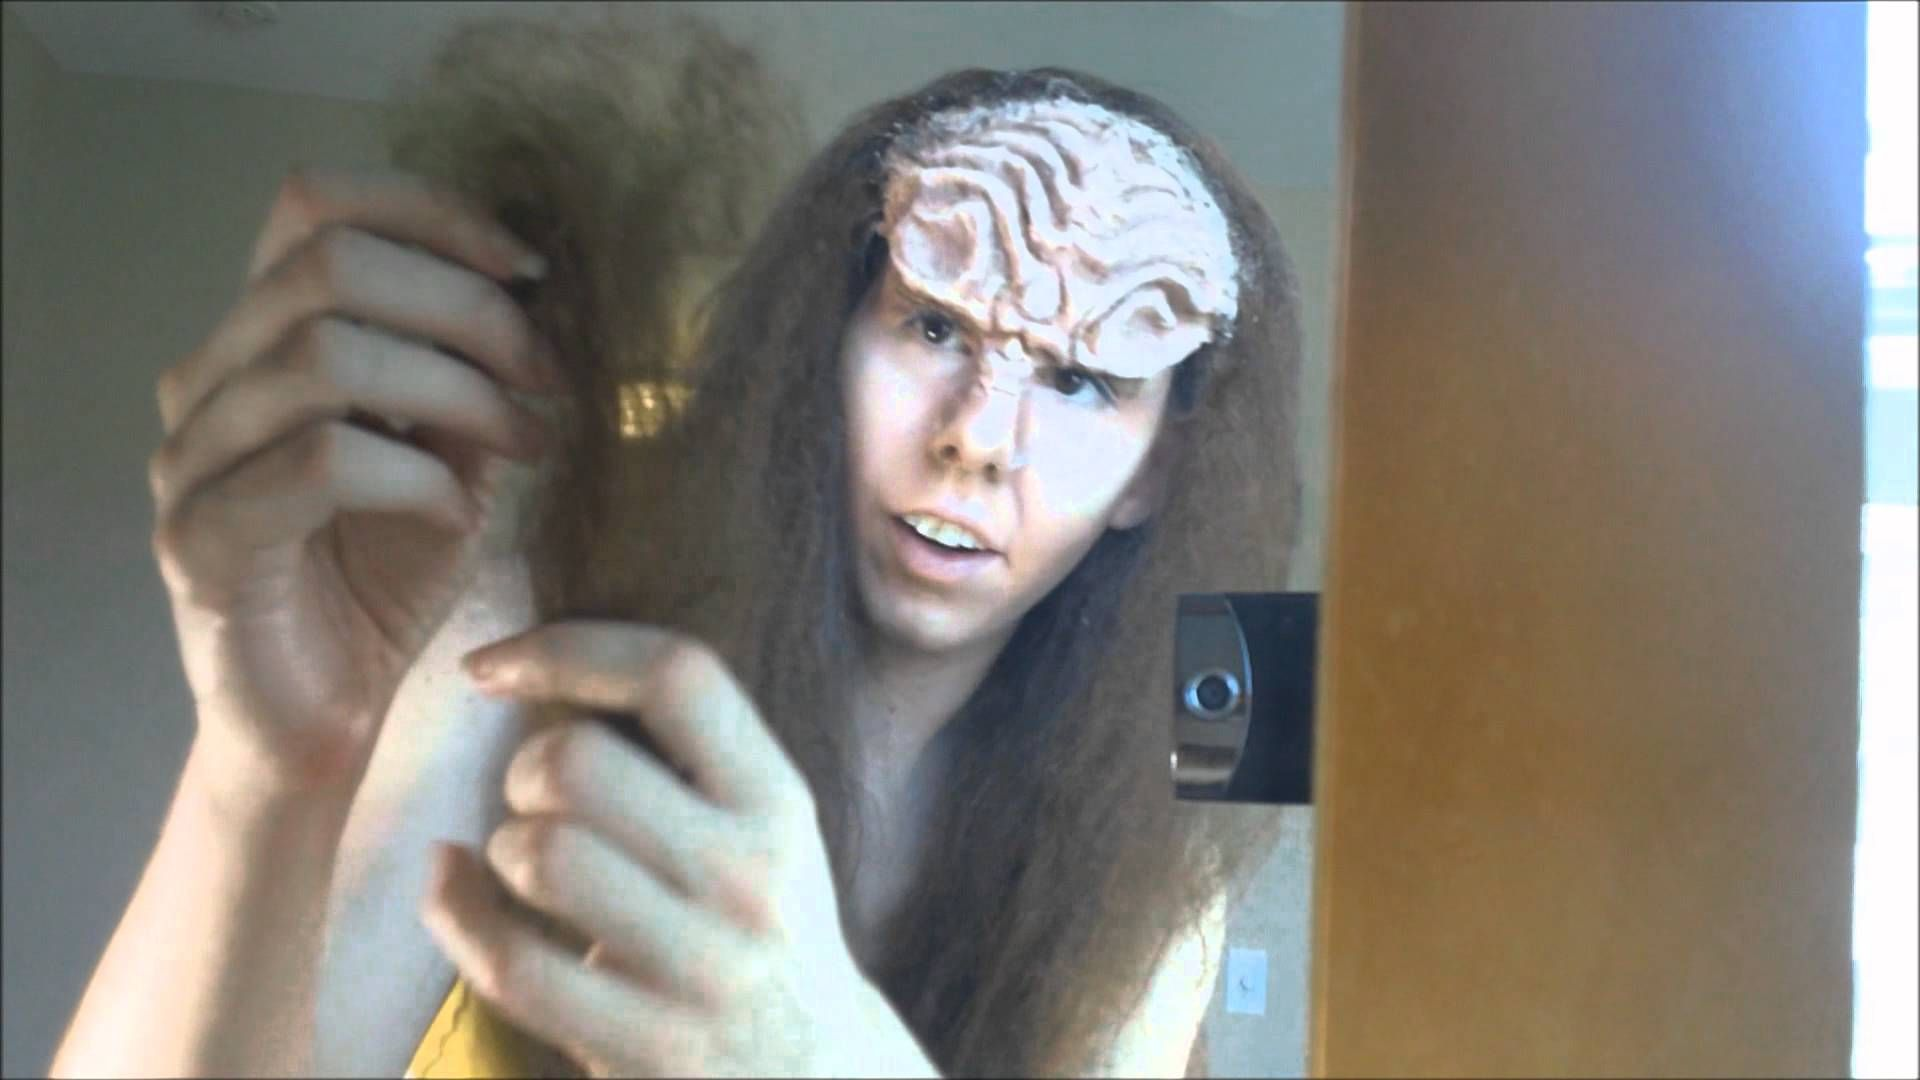 Klingon Makeup Tutorial 2 2 Klingon Star Trek Costume Makeup Tutorial